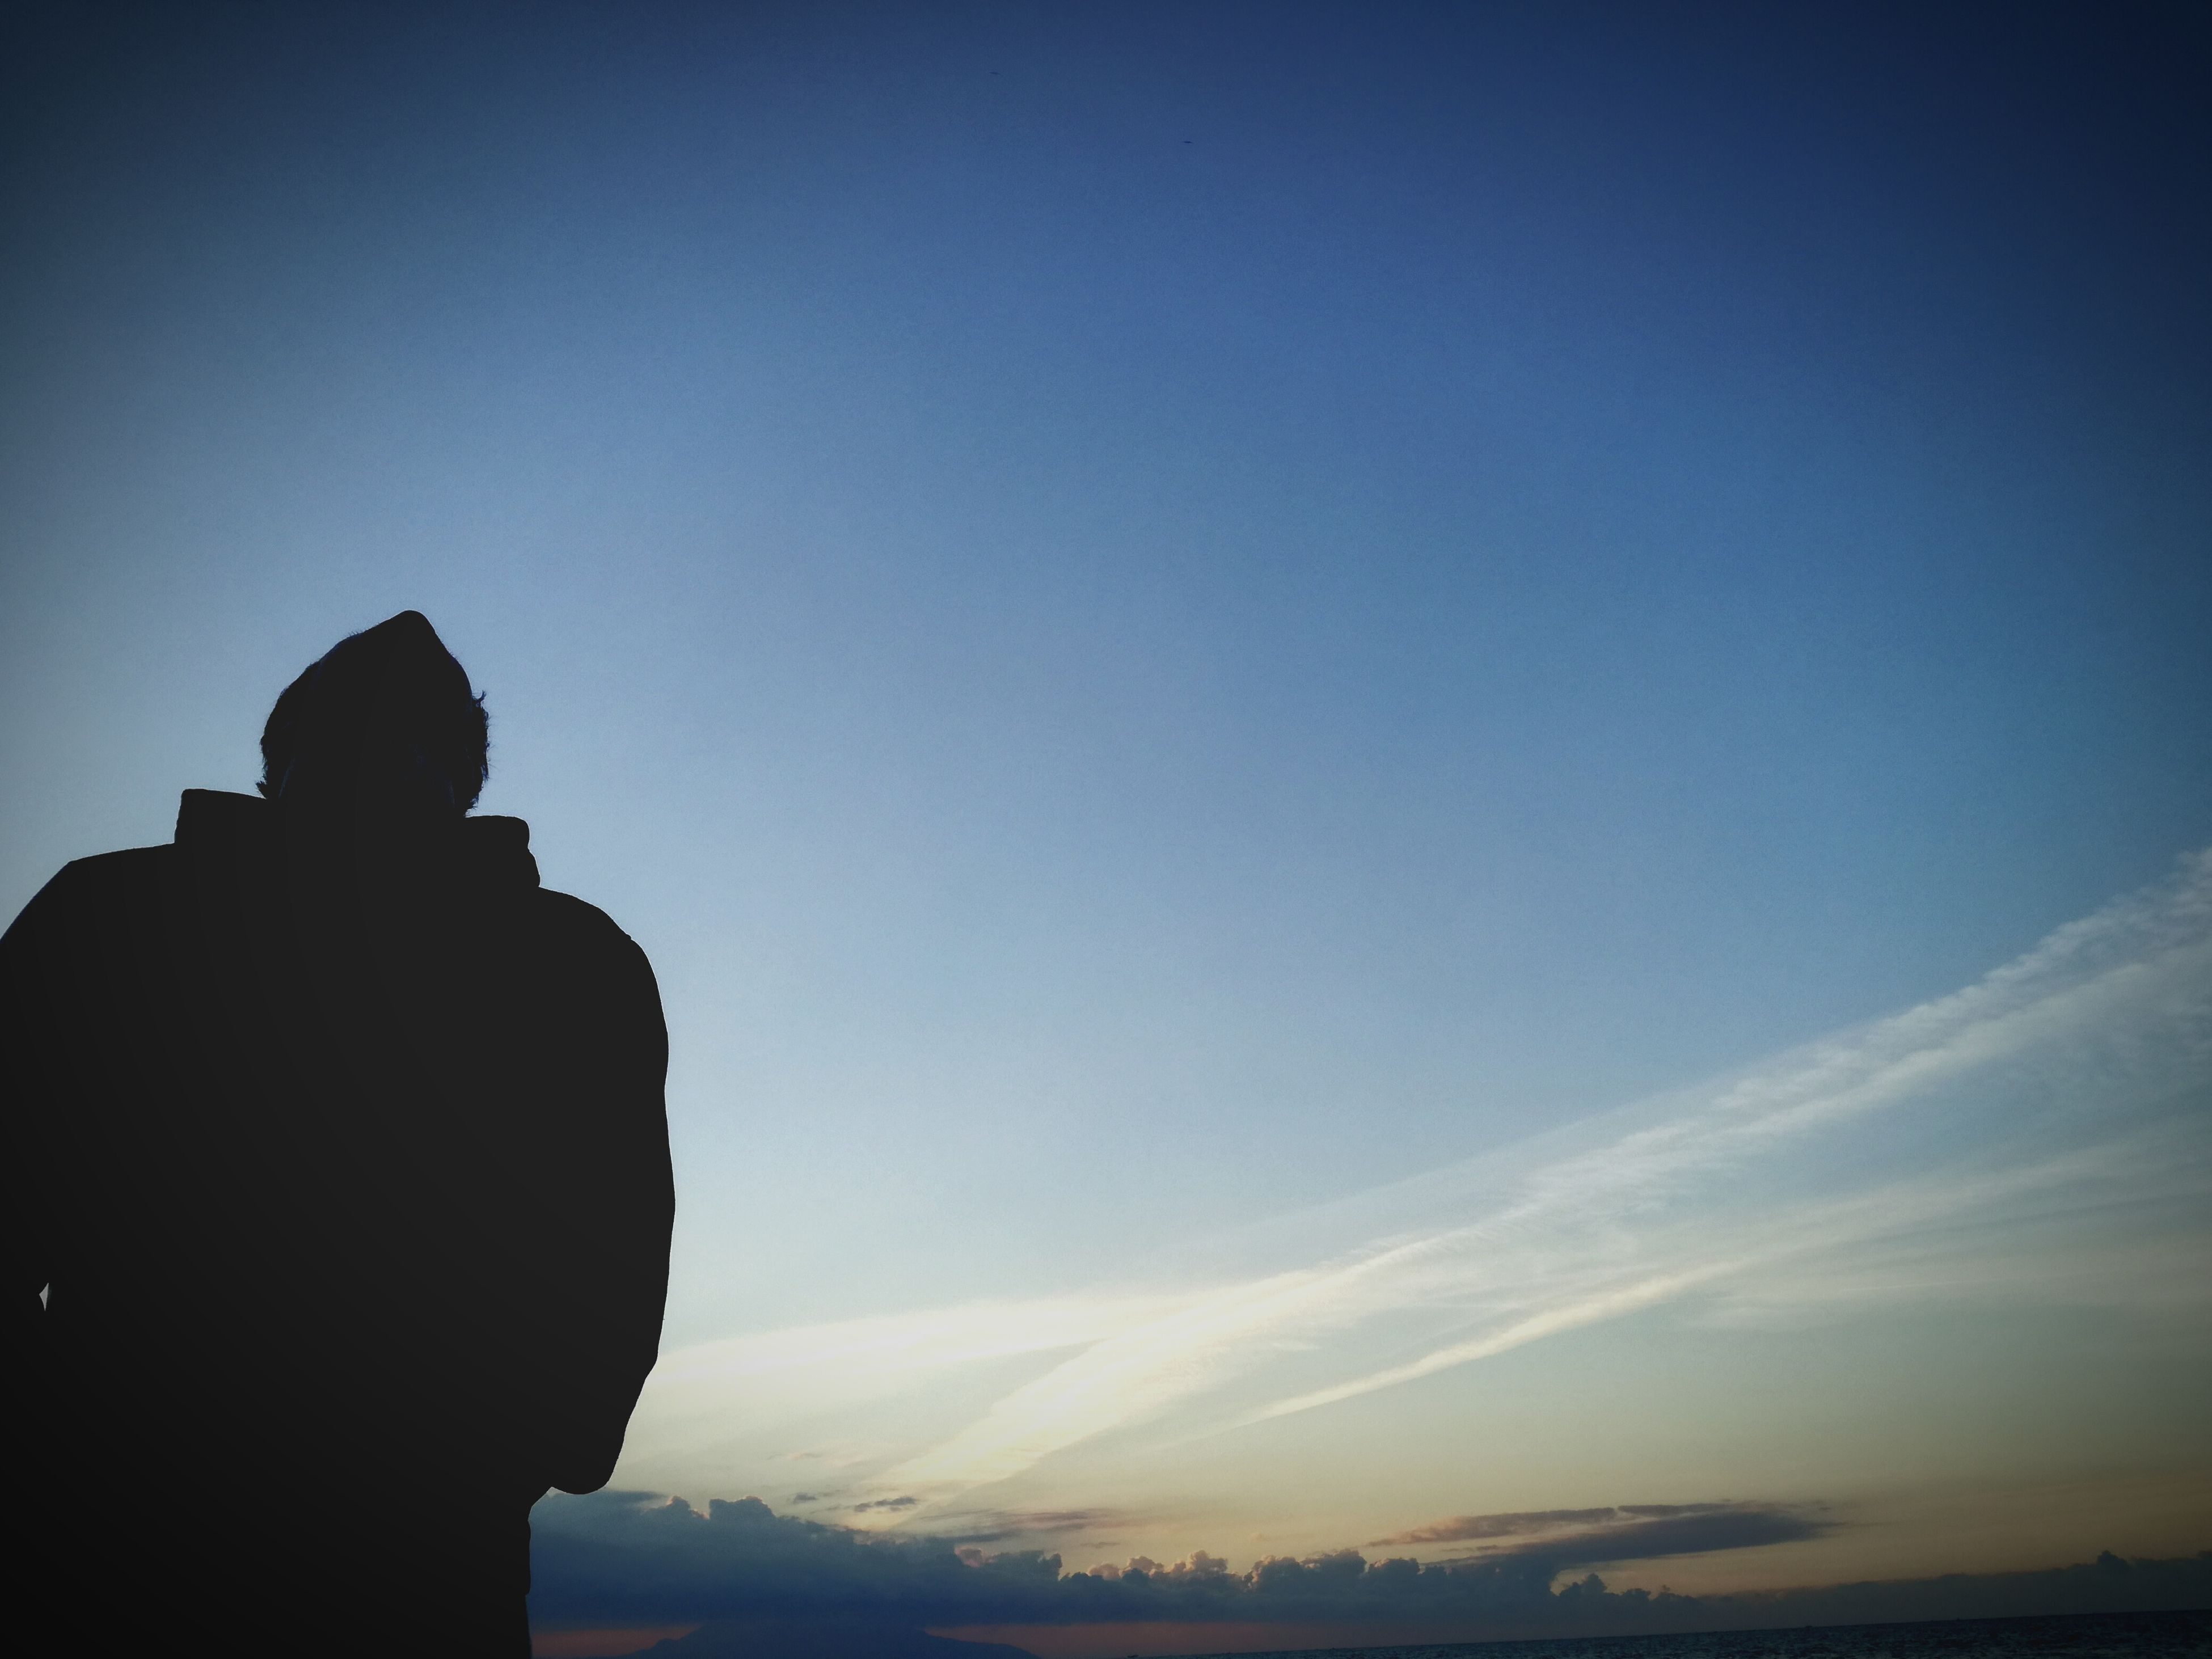 silhouette, sky, one person, one man only, sunset, only men, men, outdoors, mountain, people, adults only, nature, adult, beauty in nature, day